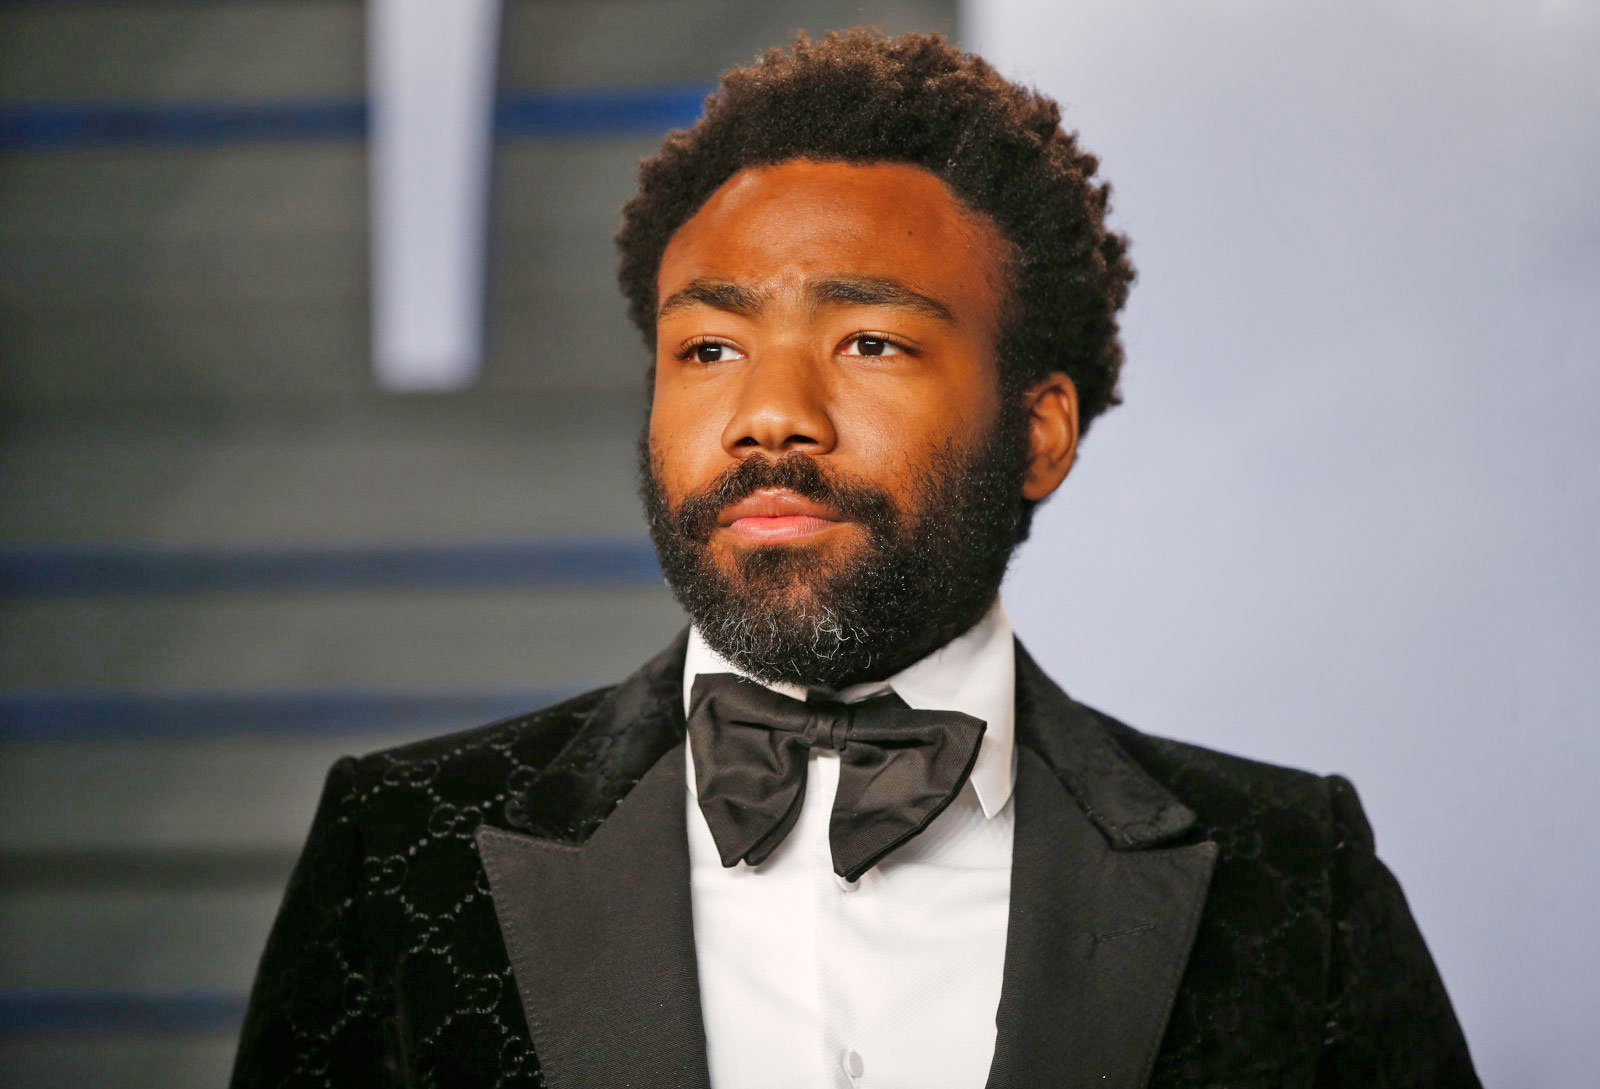 Donald Glover fans made /r/thedonald great again